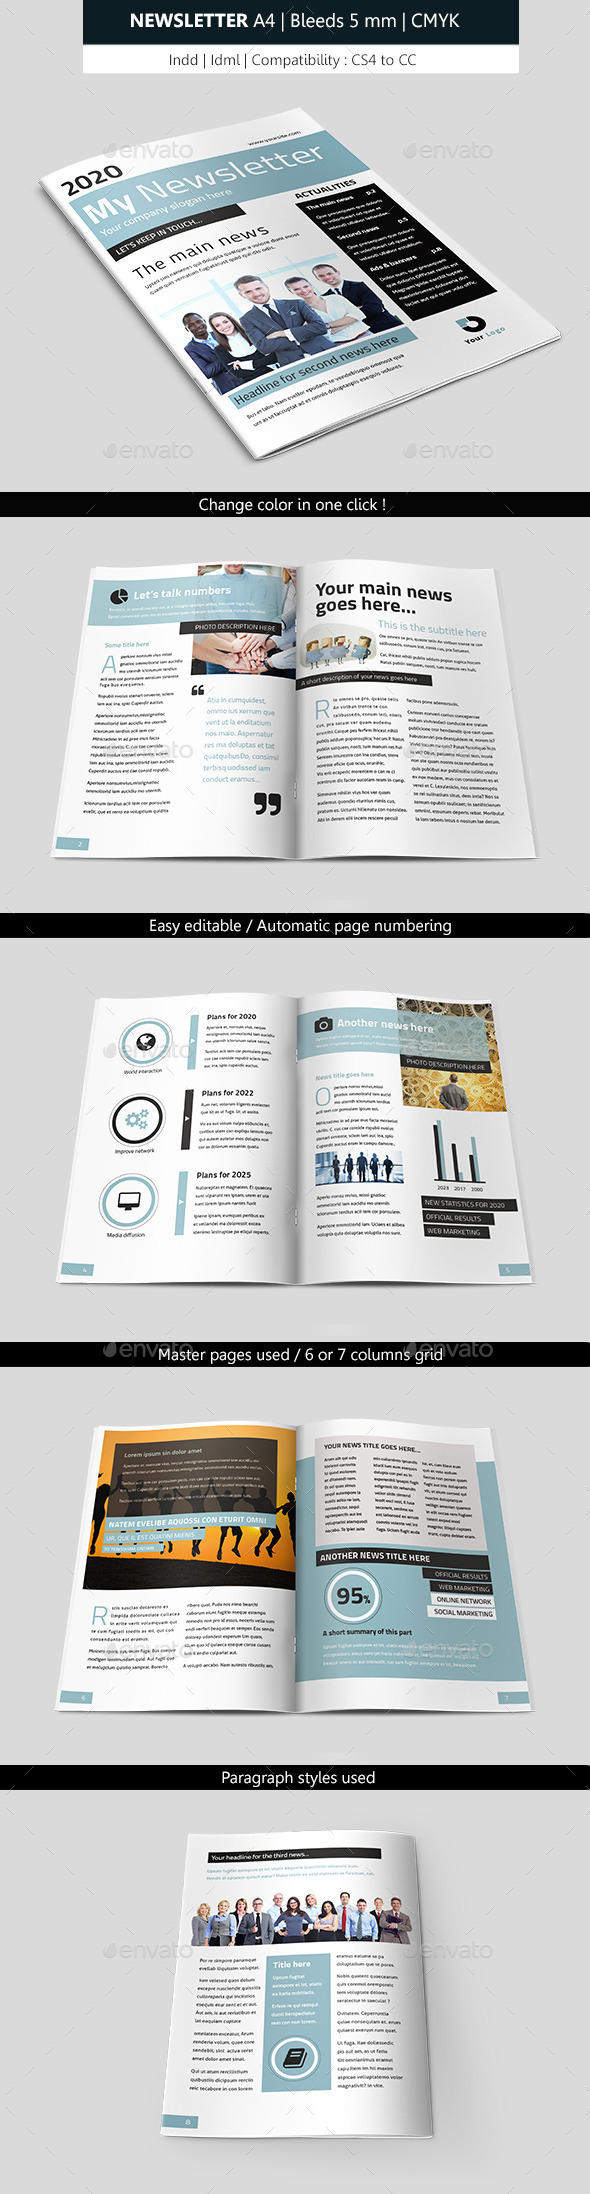 Business Indesign Newsletter Template - Newsletters Print Templates